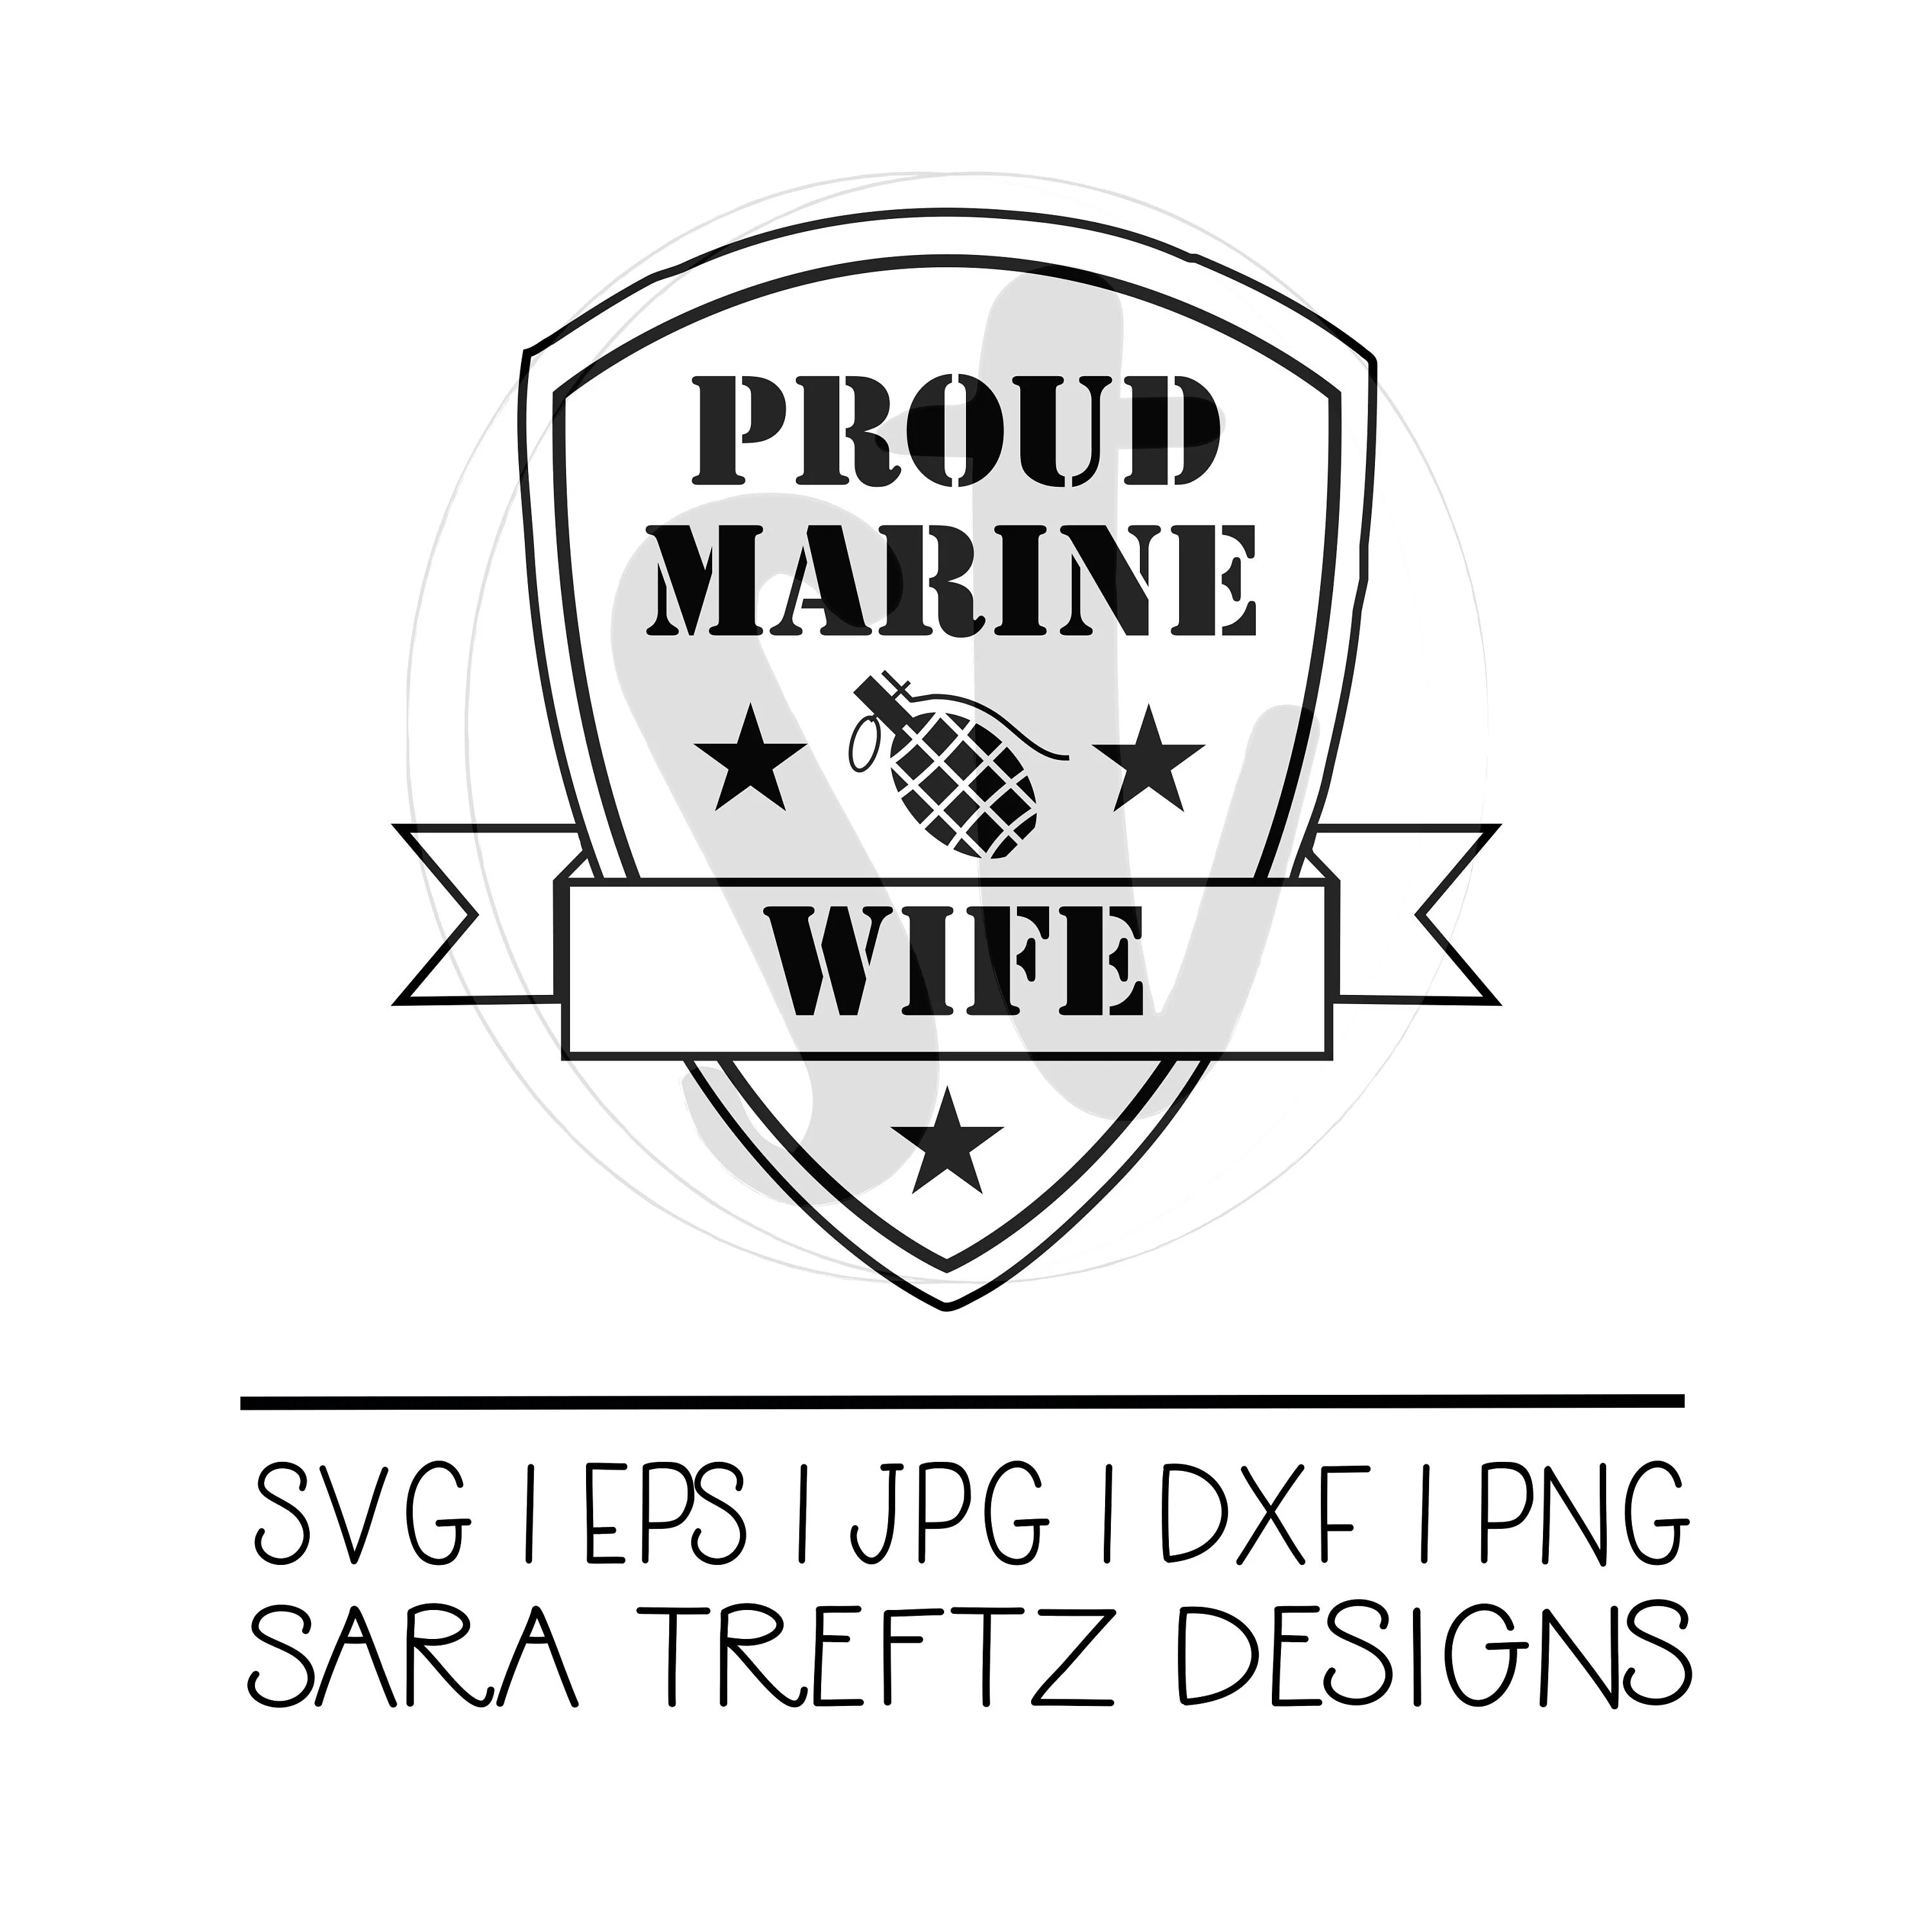 Proud Marine Wife Svg Cut File Marine Spouse Military Wife